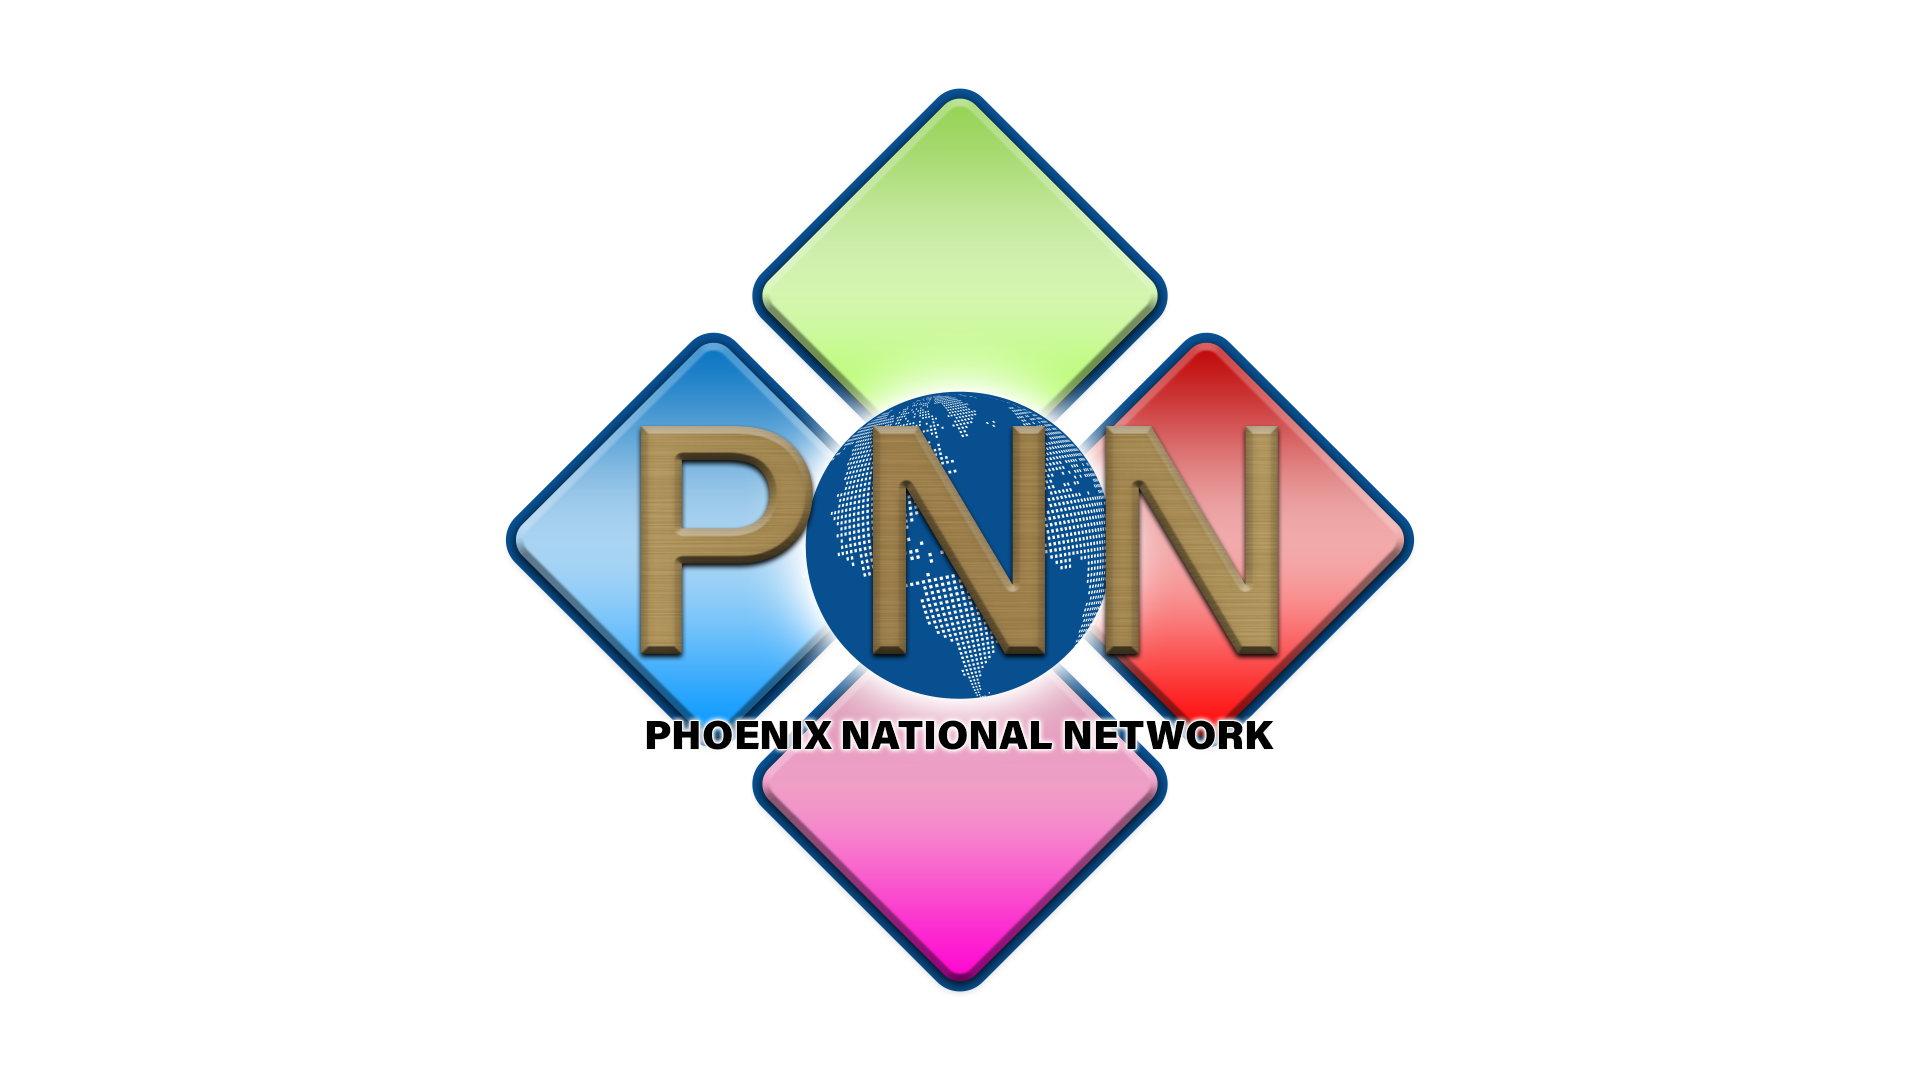 Phoenix National Network